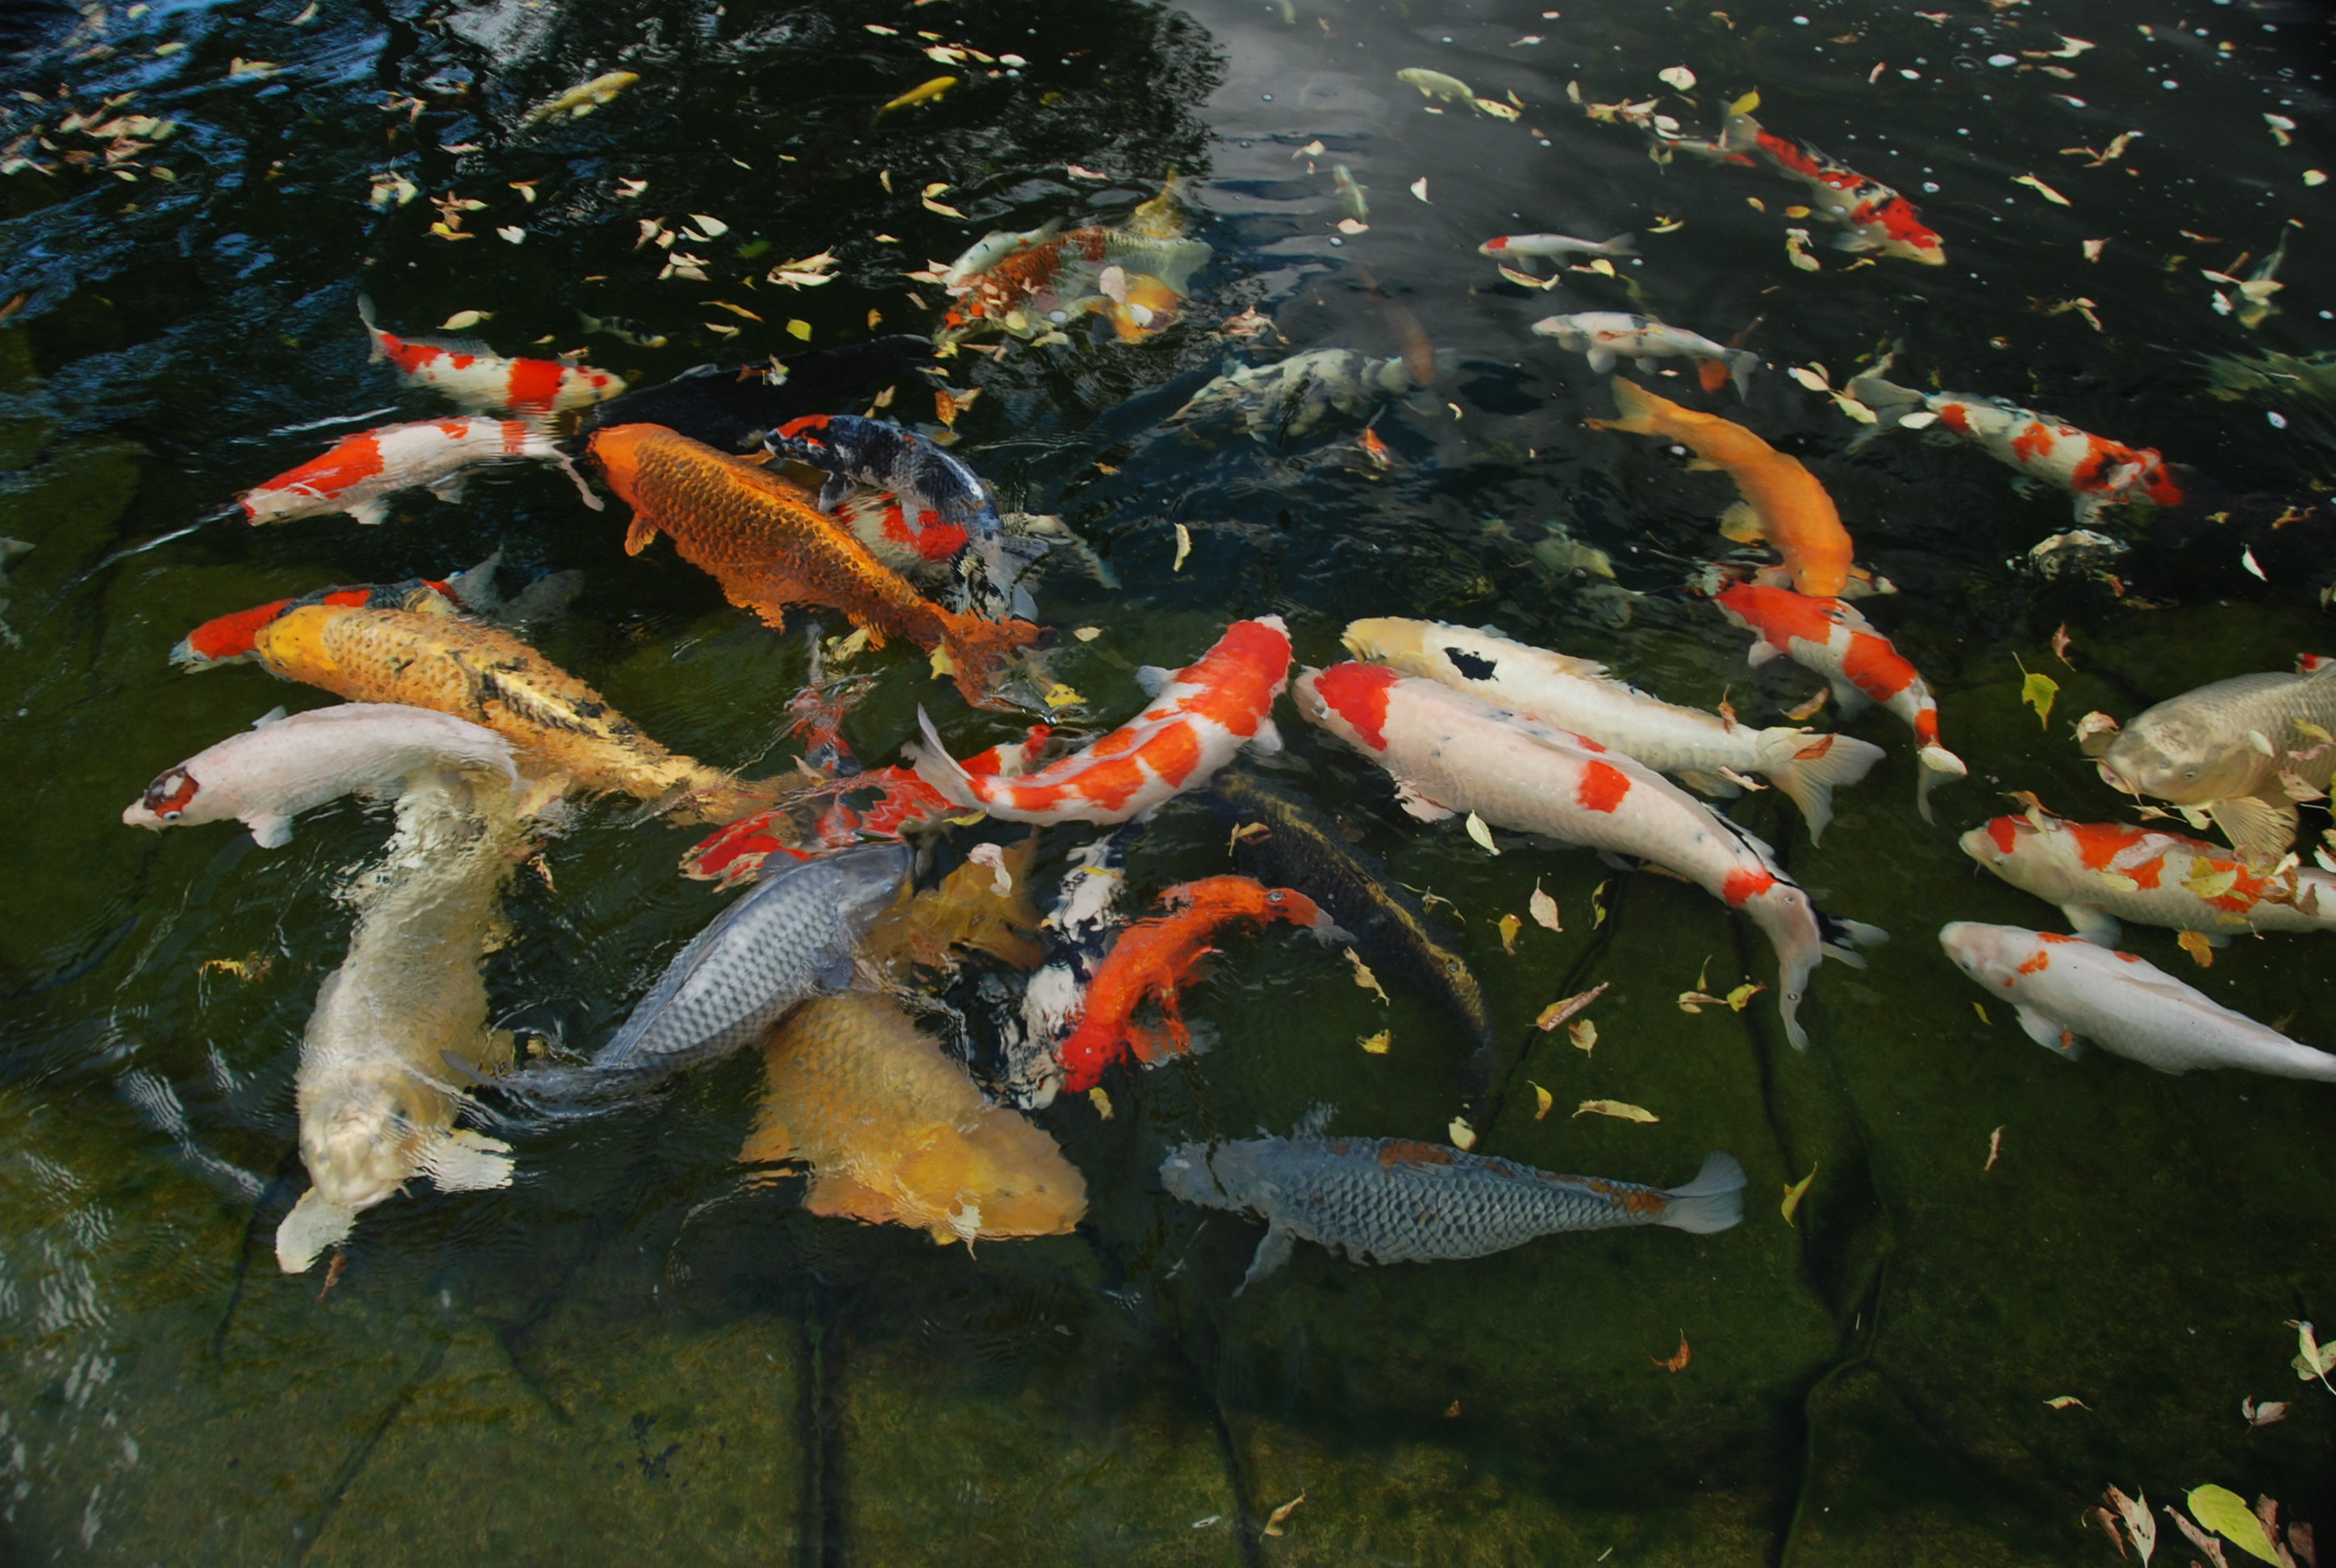 Koi acres imported japanese koi online shopping for koi for Japanese koi names